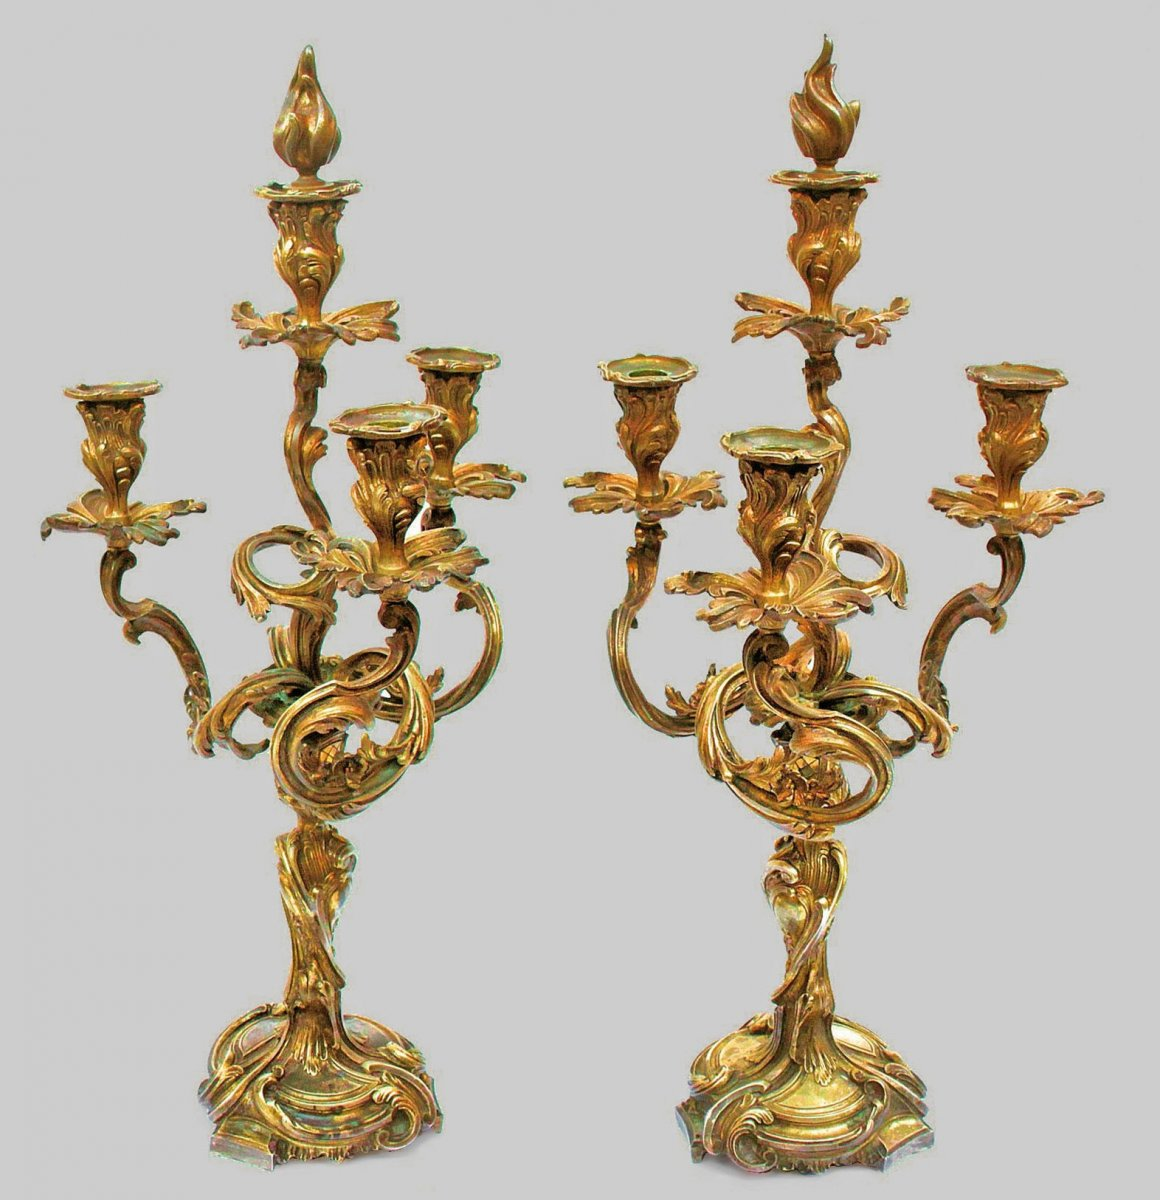 Pair Of Large Candelabra Napoleon III Bronze (h: 68 Cm)